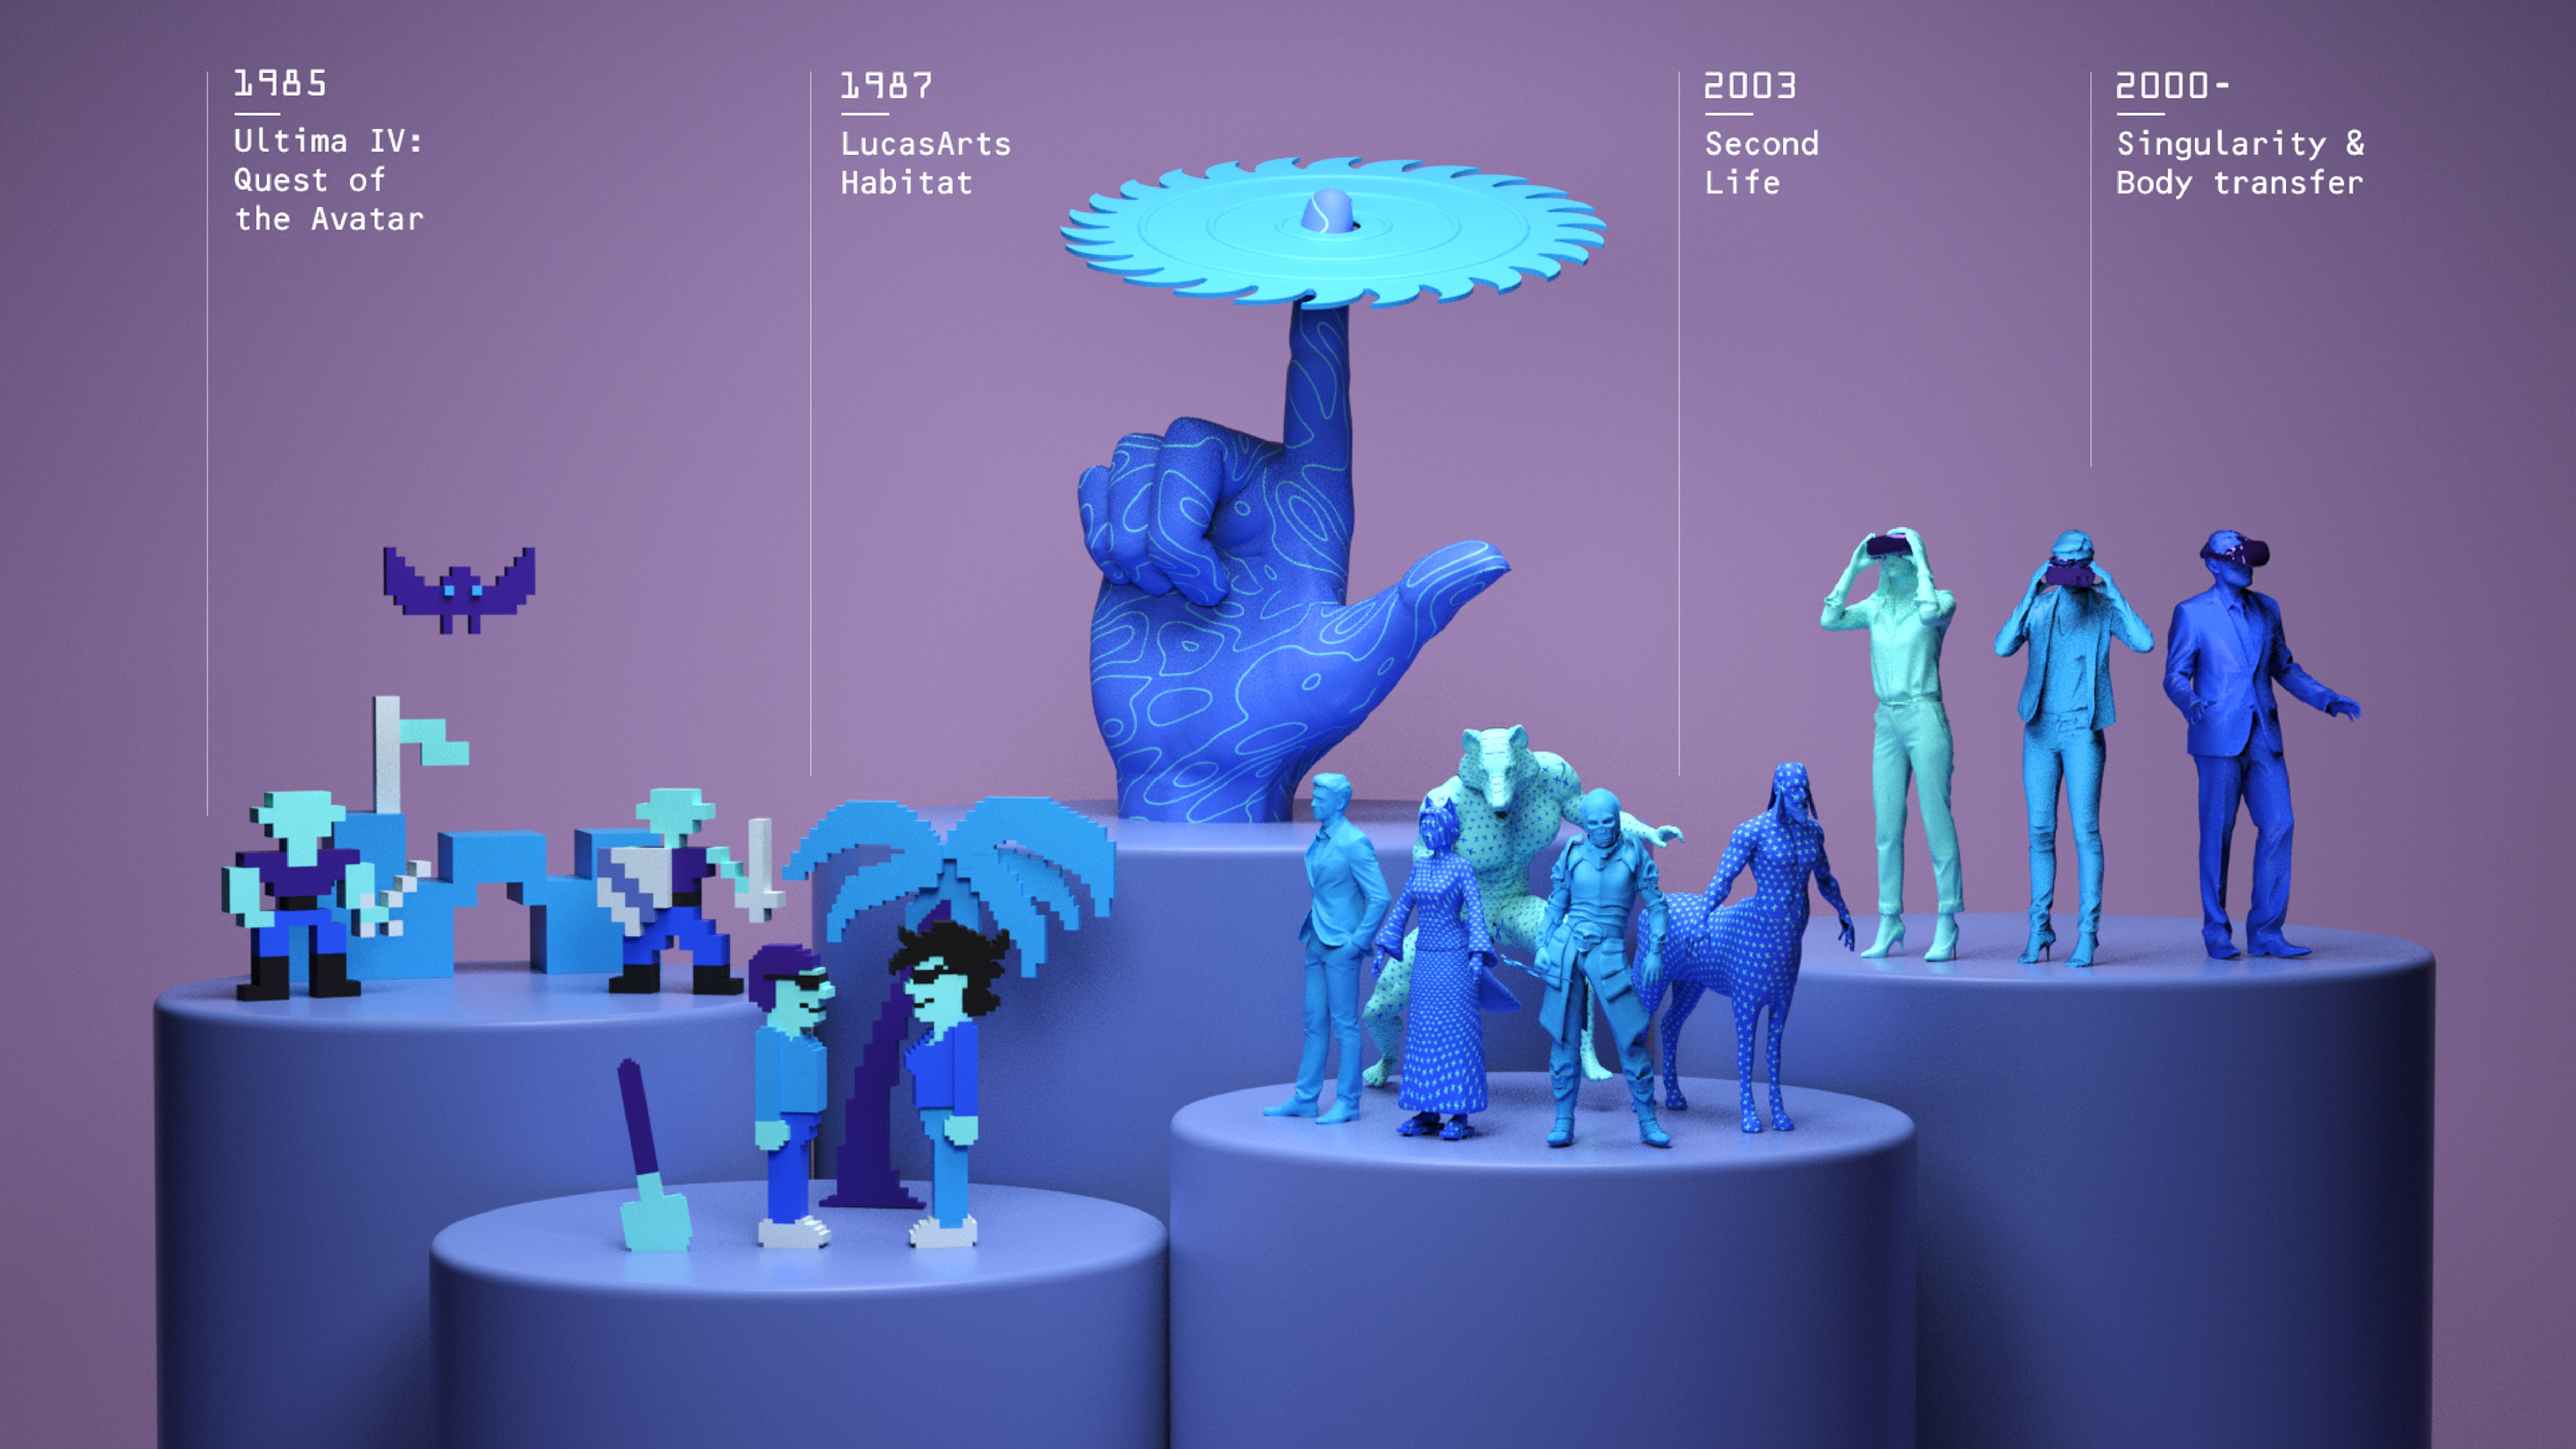 An illustrated history of avatars, from 1985 to the 2000s, flanked by the hand of Vishnu spinning a cog.